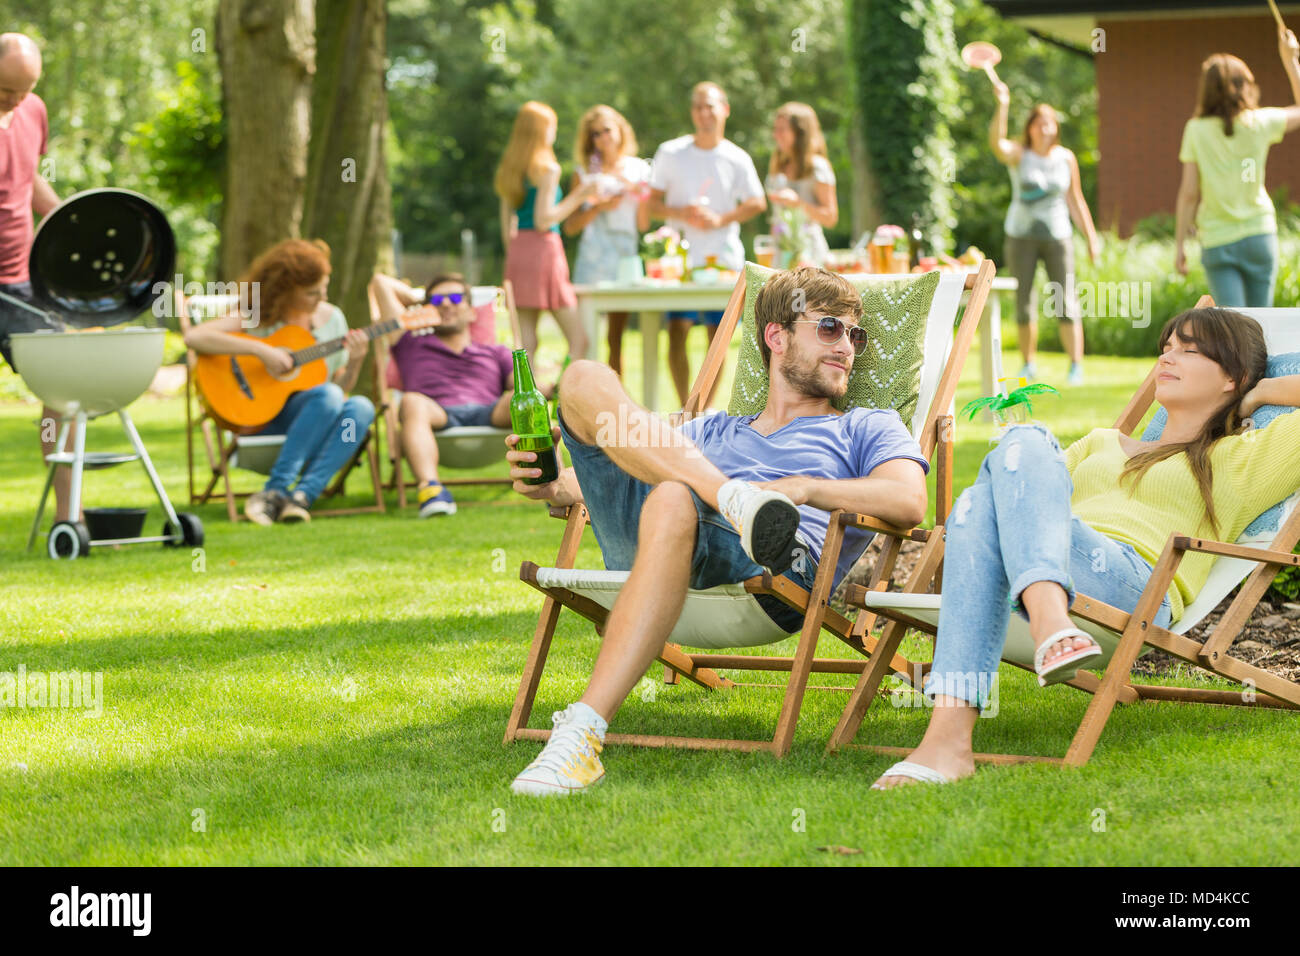 Young friends having barbecue picnic in the nature, playing guitar, playing badminton, enjoying sunny summer day outdoor Stock Photo